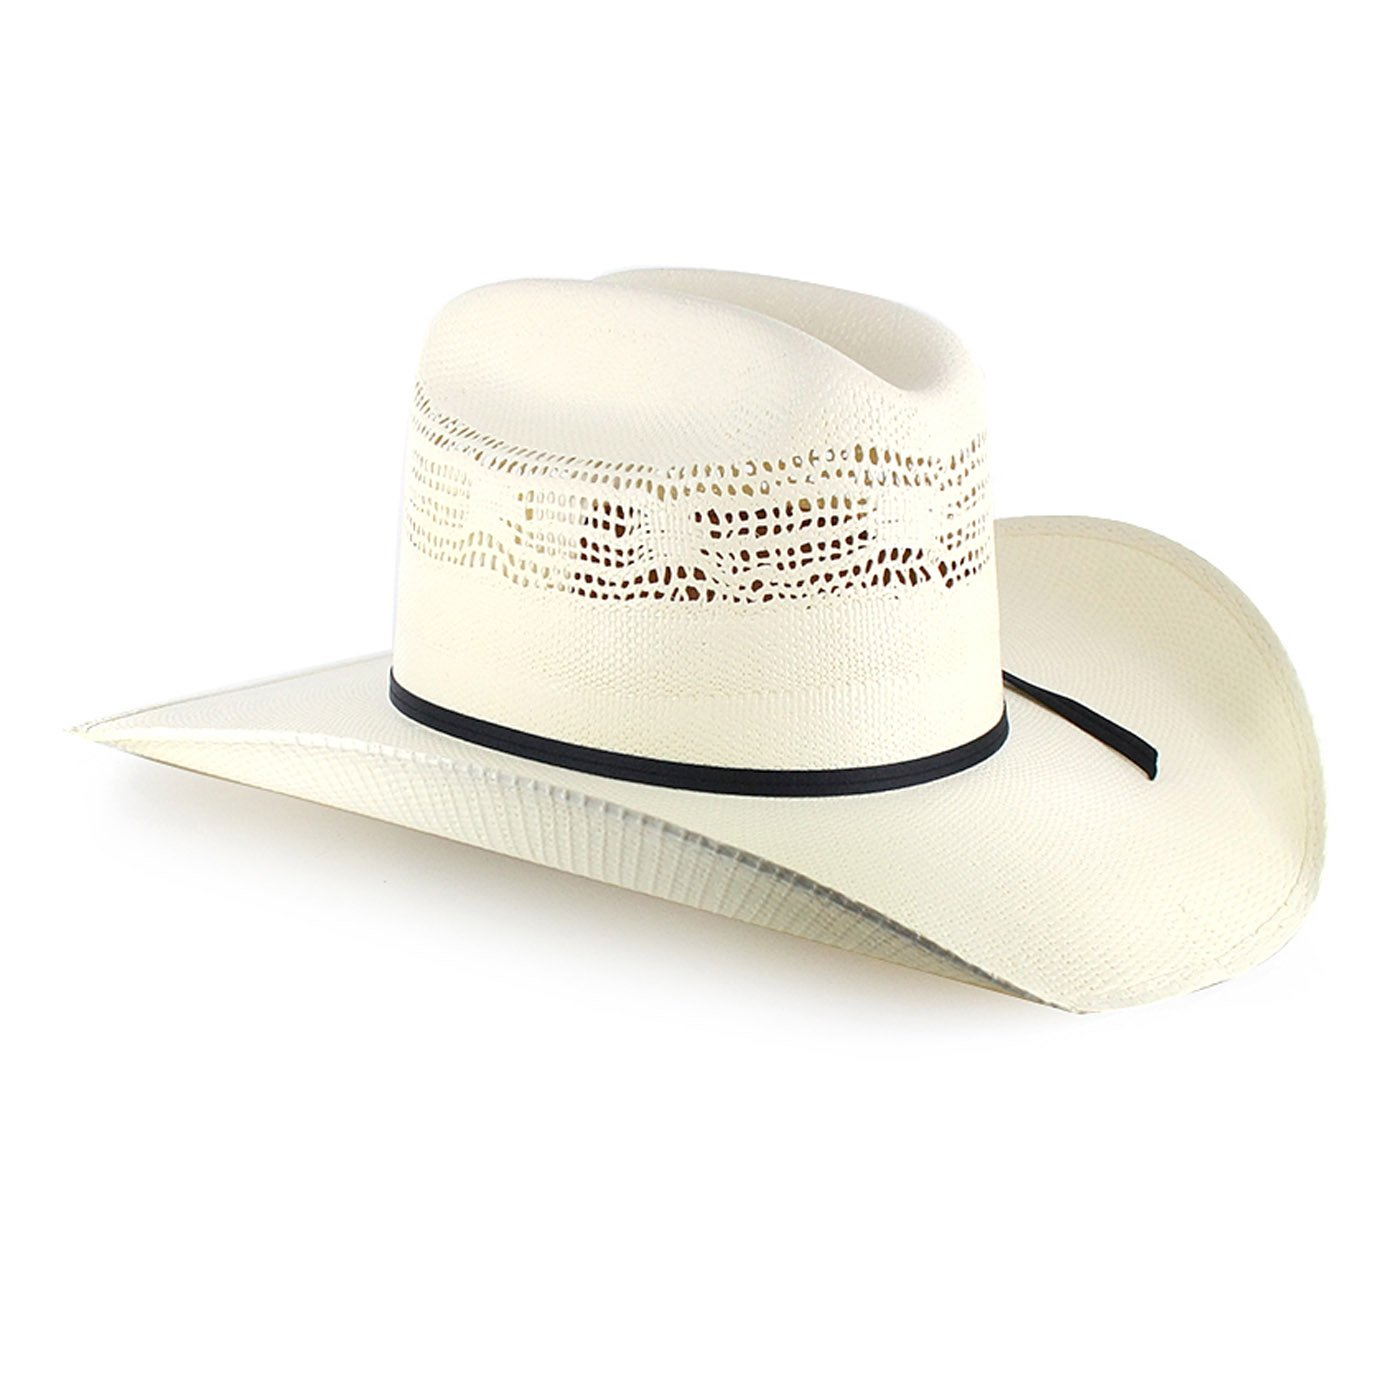 14a30a56a Stetson And Dobbs Hats RSDENS-7340 Denison 07 Cowboy Hat: Amazon.ca ...